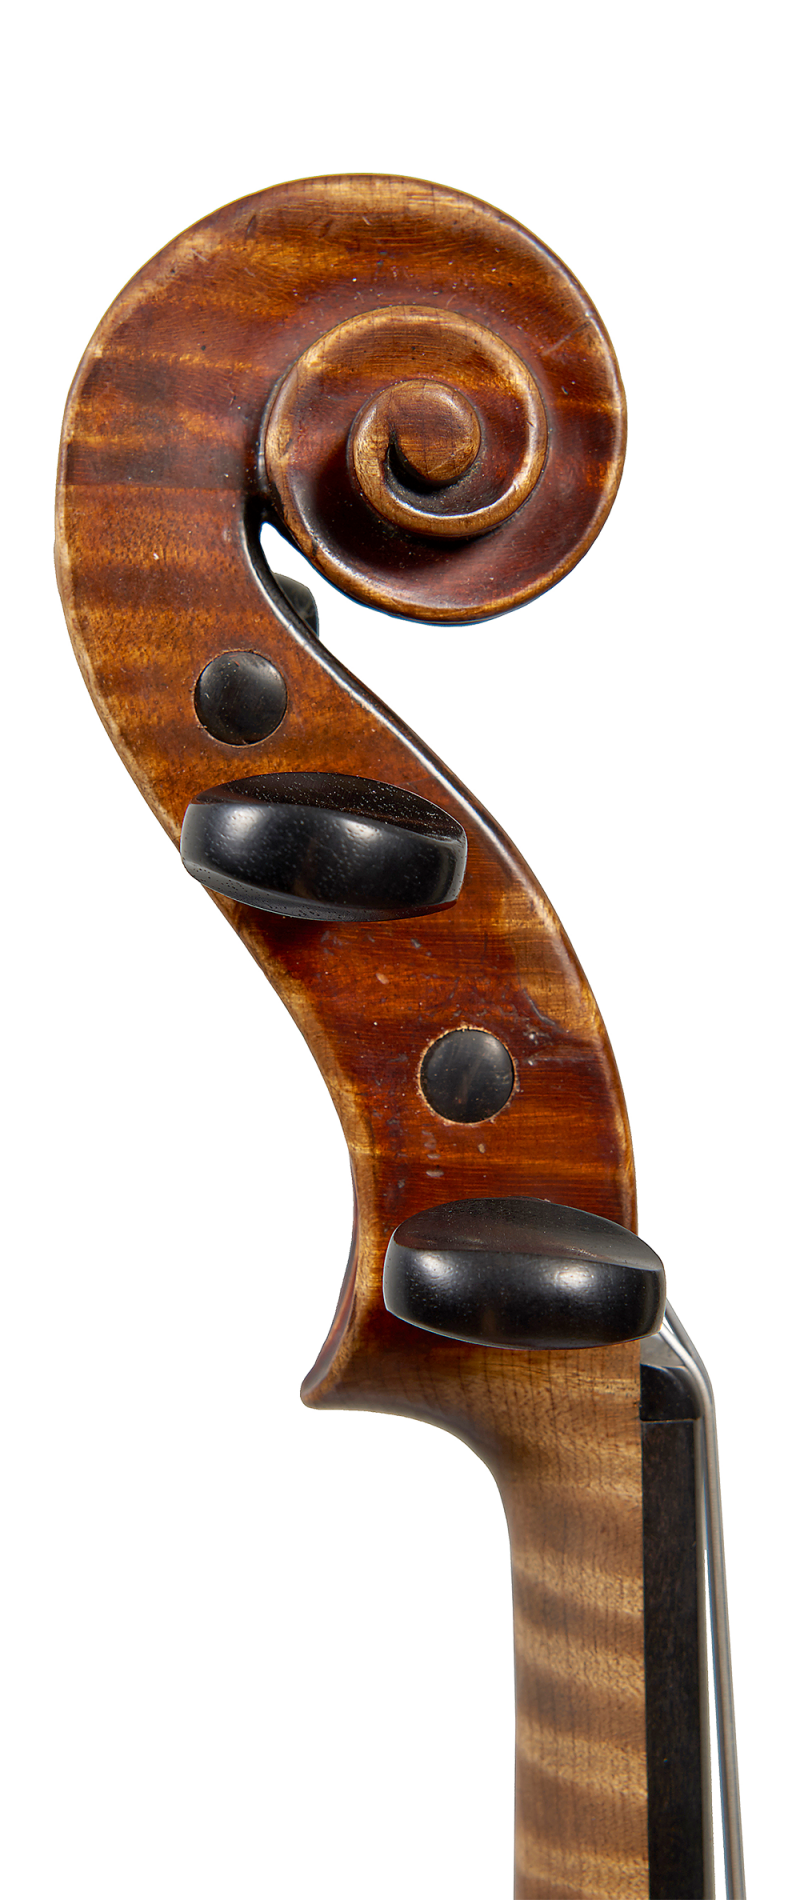 Scroll of a violin by ASP Bernardel, 1829. The wood chosen for this violin is exquisite and the rich burgundy varnish covering the instrument is still largely intact.